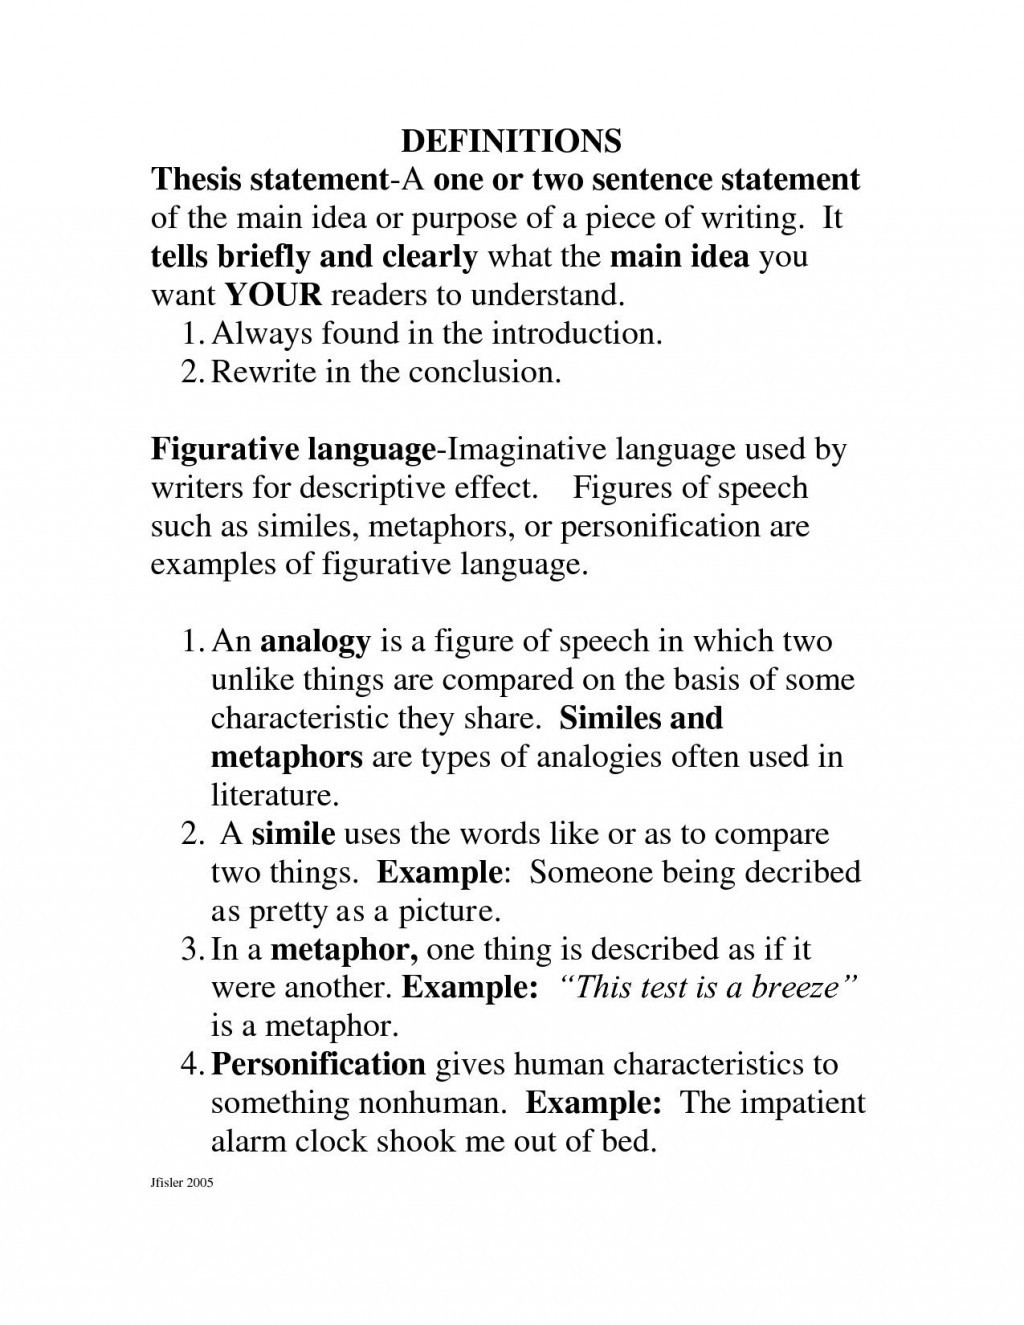 021 Definition Of Terms In Research Paper Example Thesis Statement Zx2 Words To Write Essay On Awesome How A Introduction Conclusion Paragraph For Outline Large